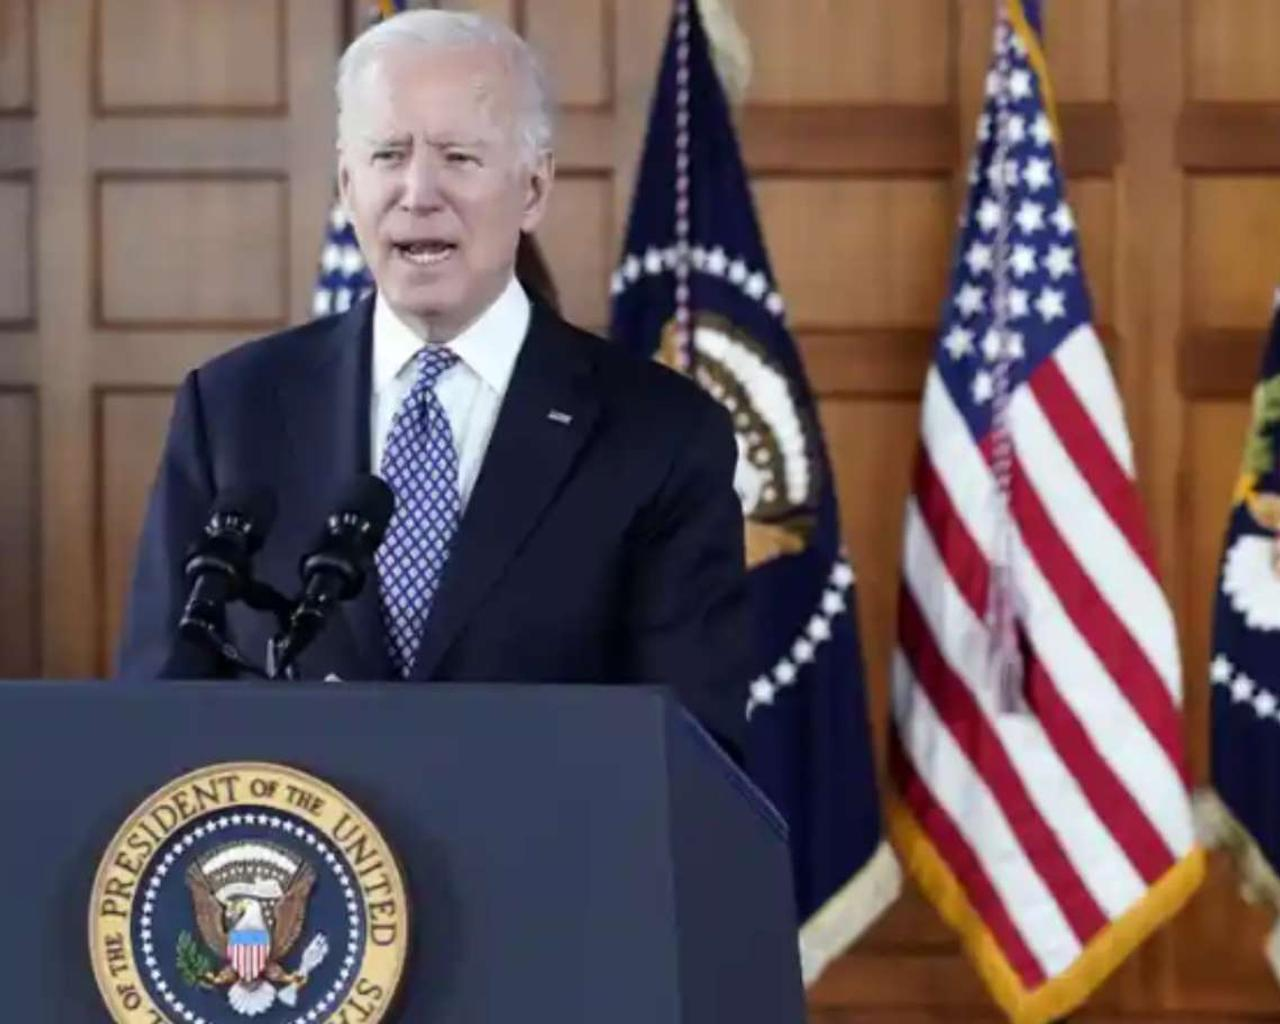 Joe Biden to announce measures to reduce gun violence in the US today